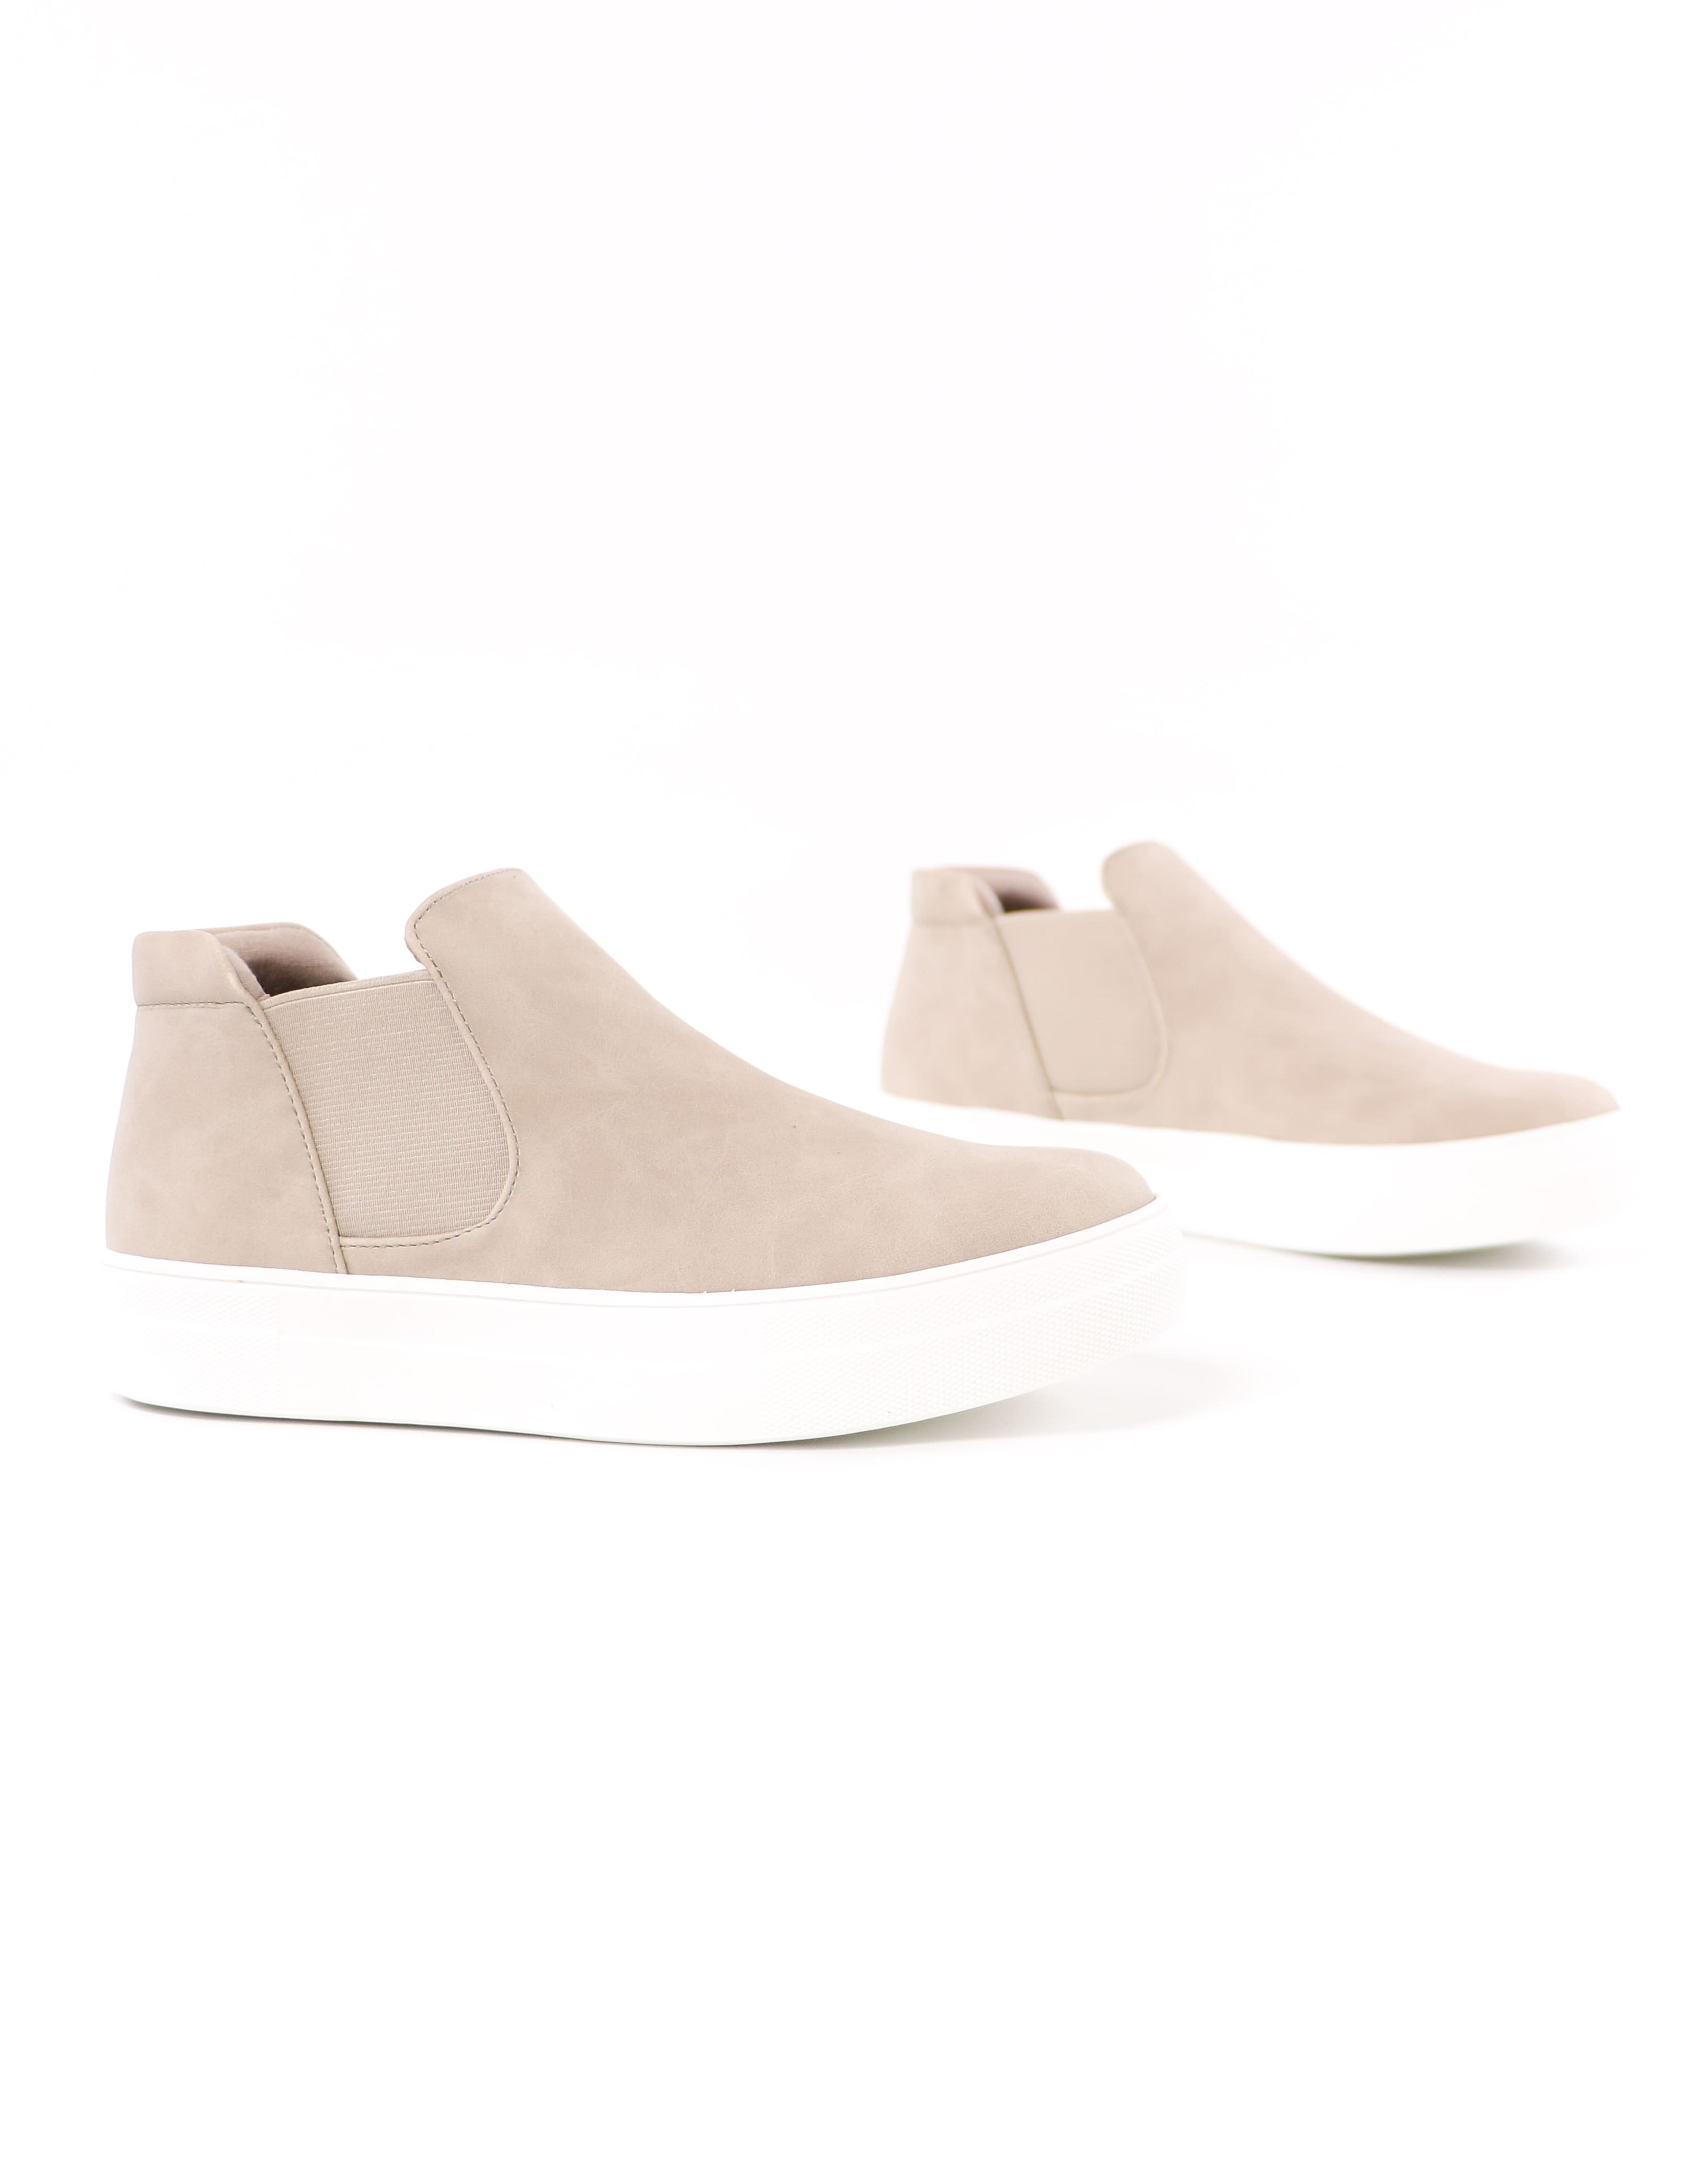 close up of the sand now or never platform high top sneakers - elle bleu shoes